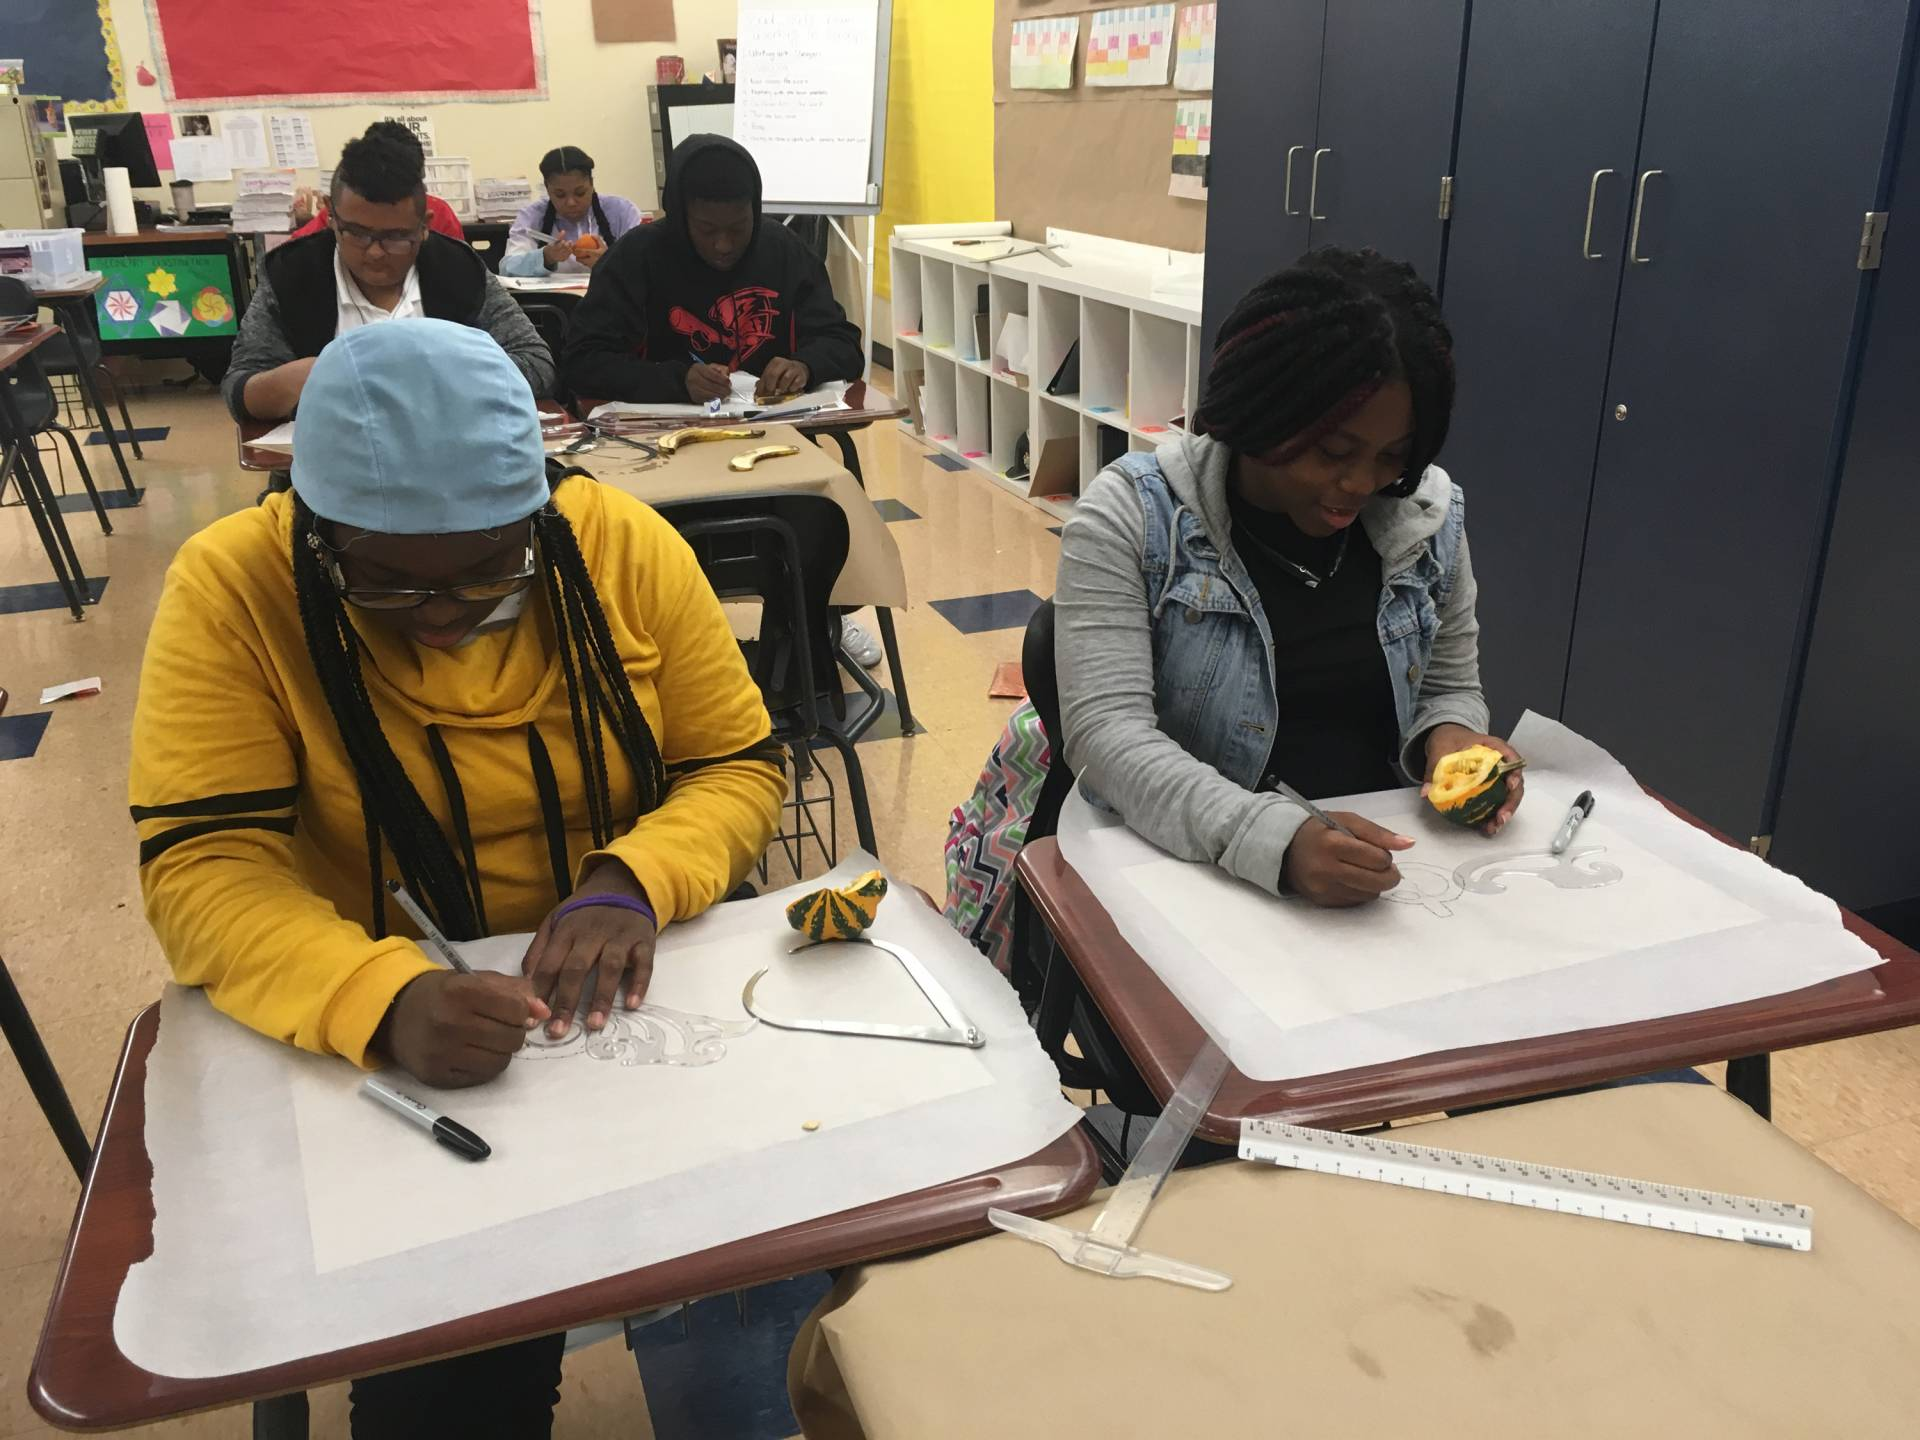 Students doing drawing exercises in class at Trenton Central High School